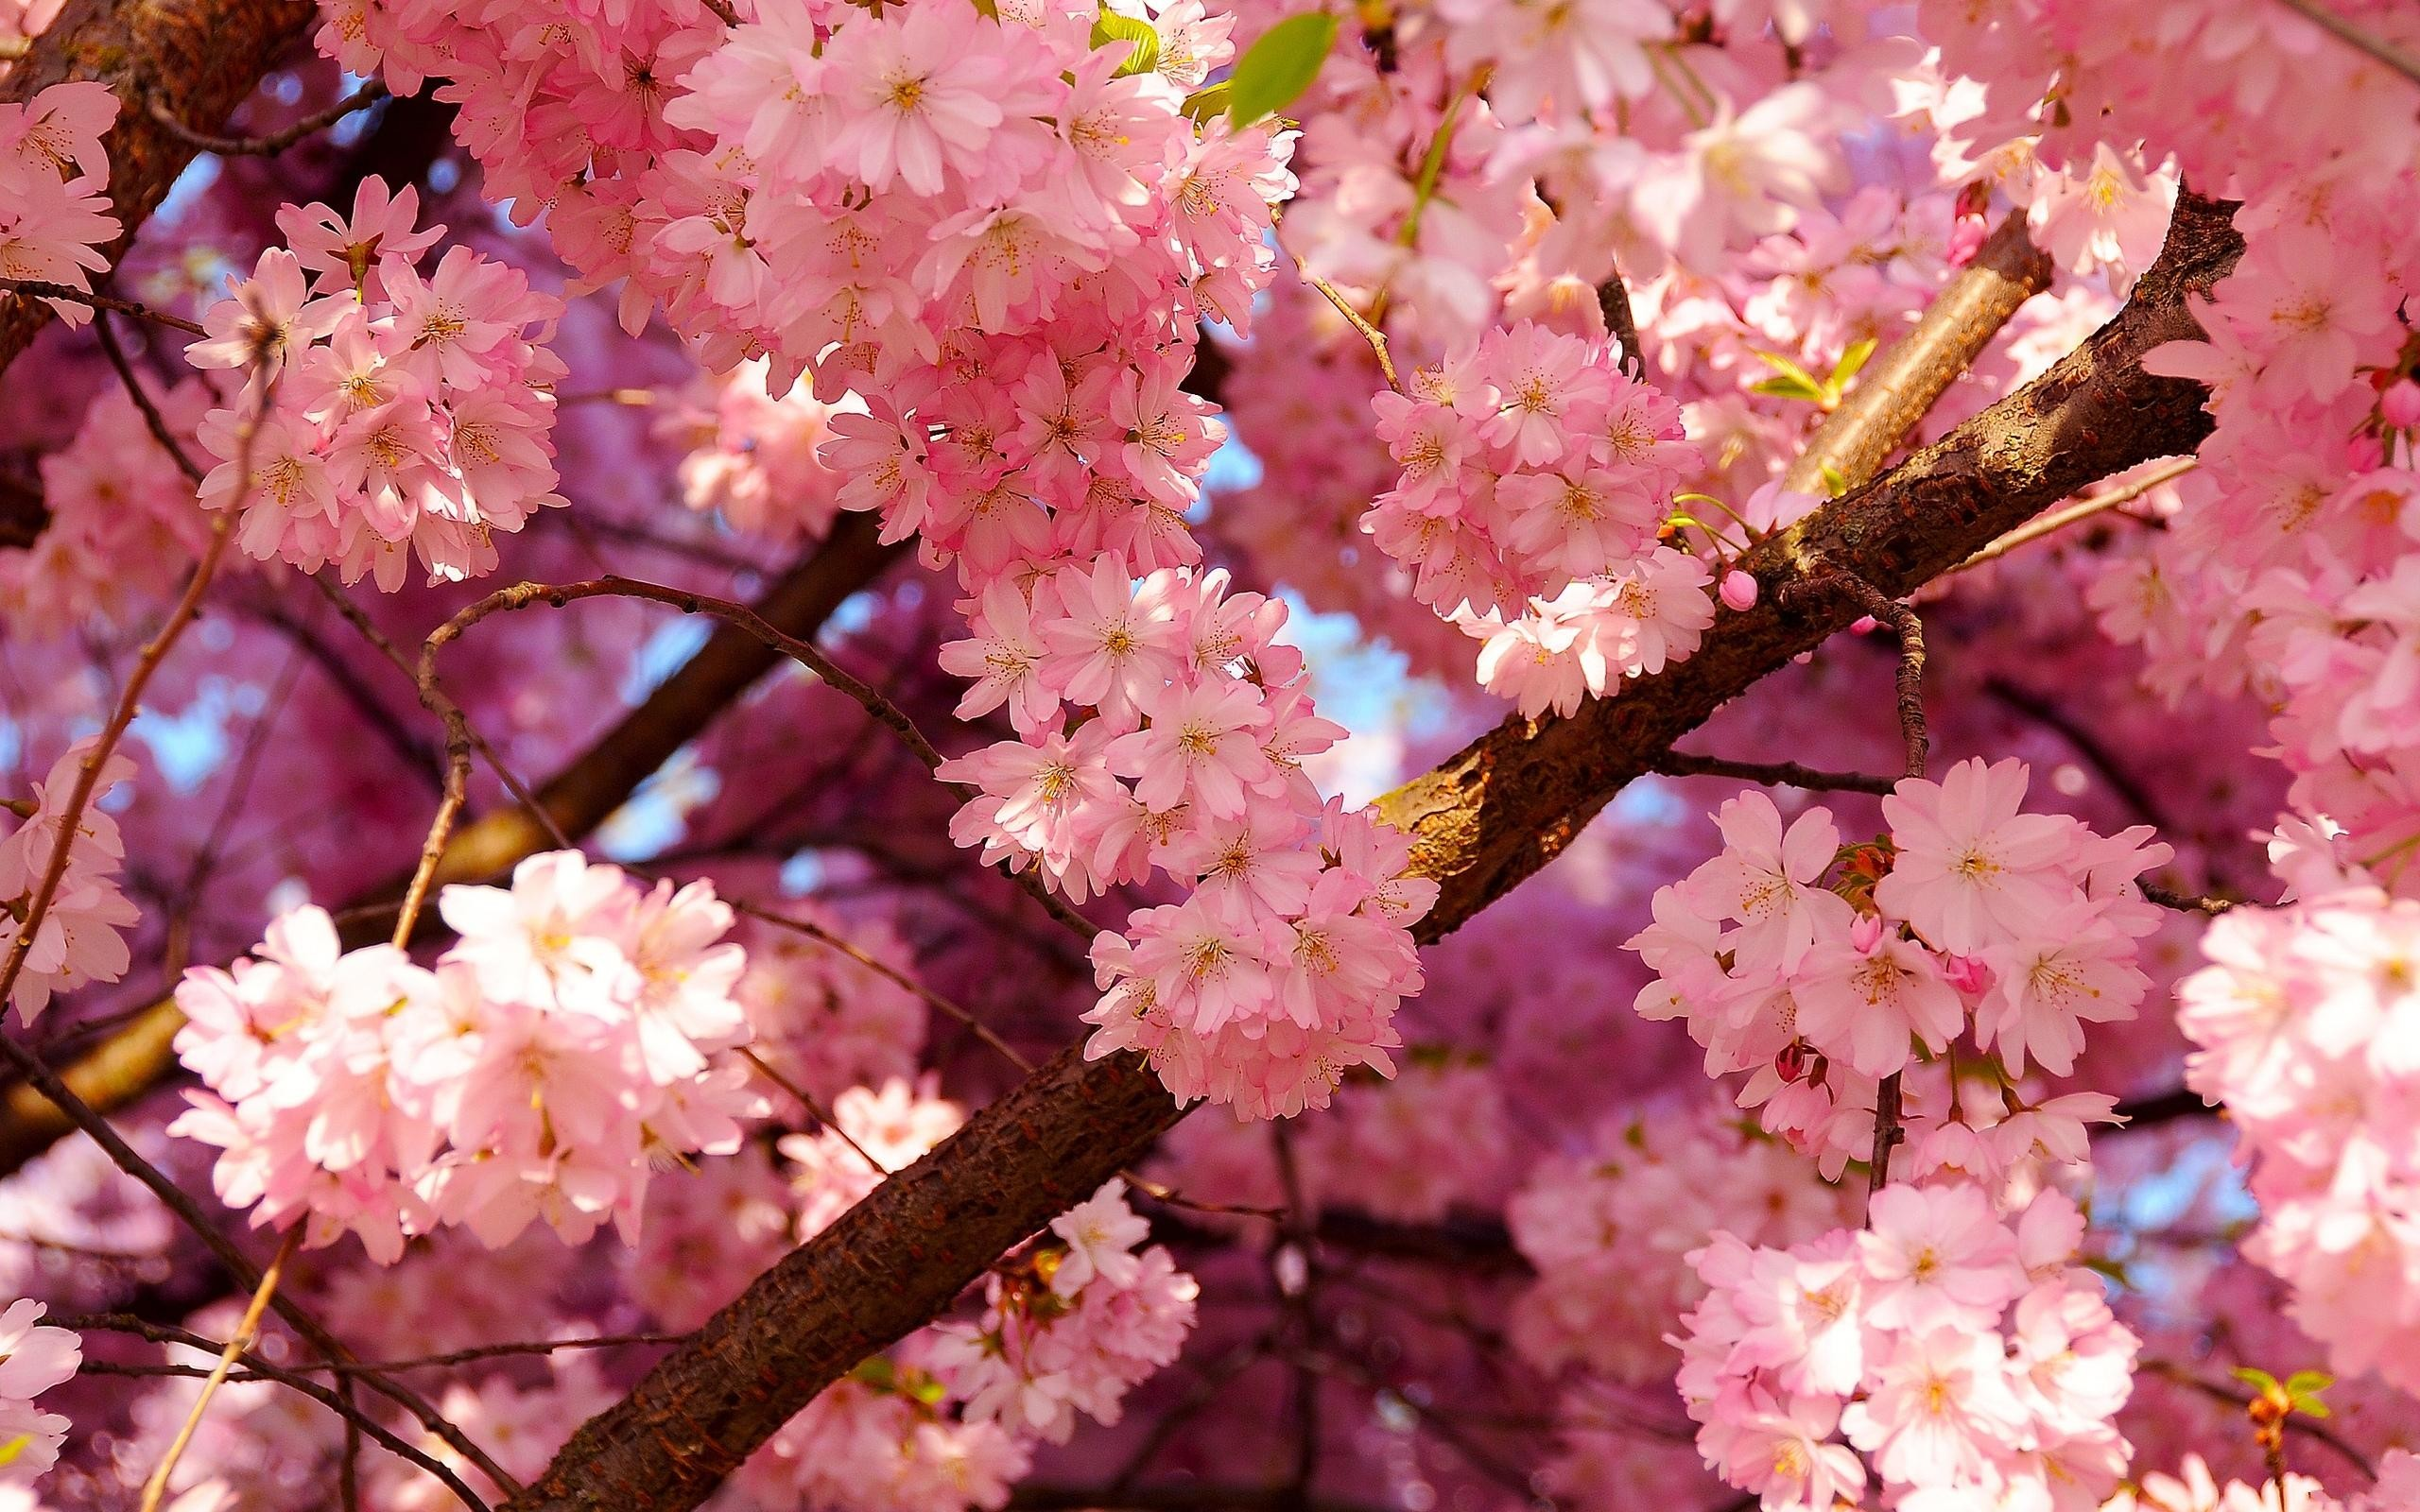 Hd-cherry-blossom-wallpapers